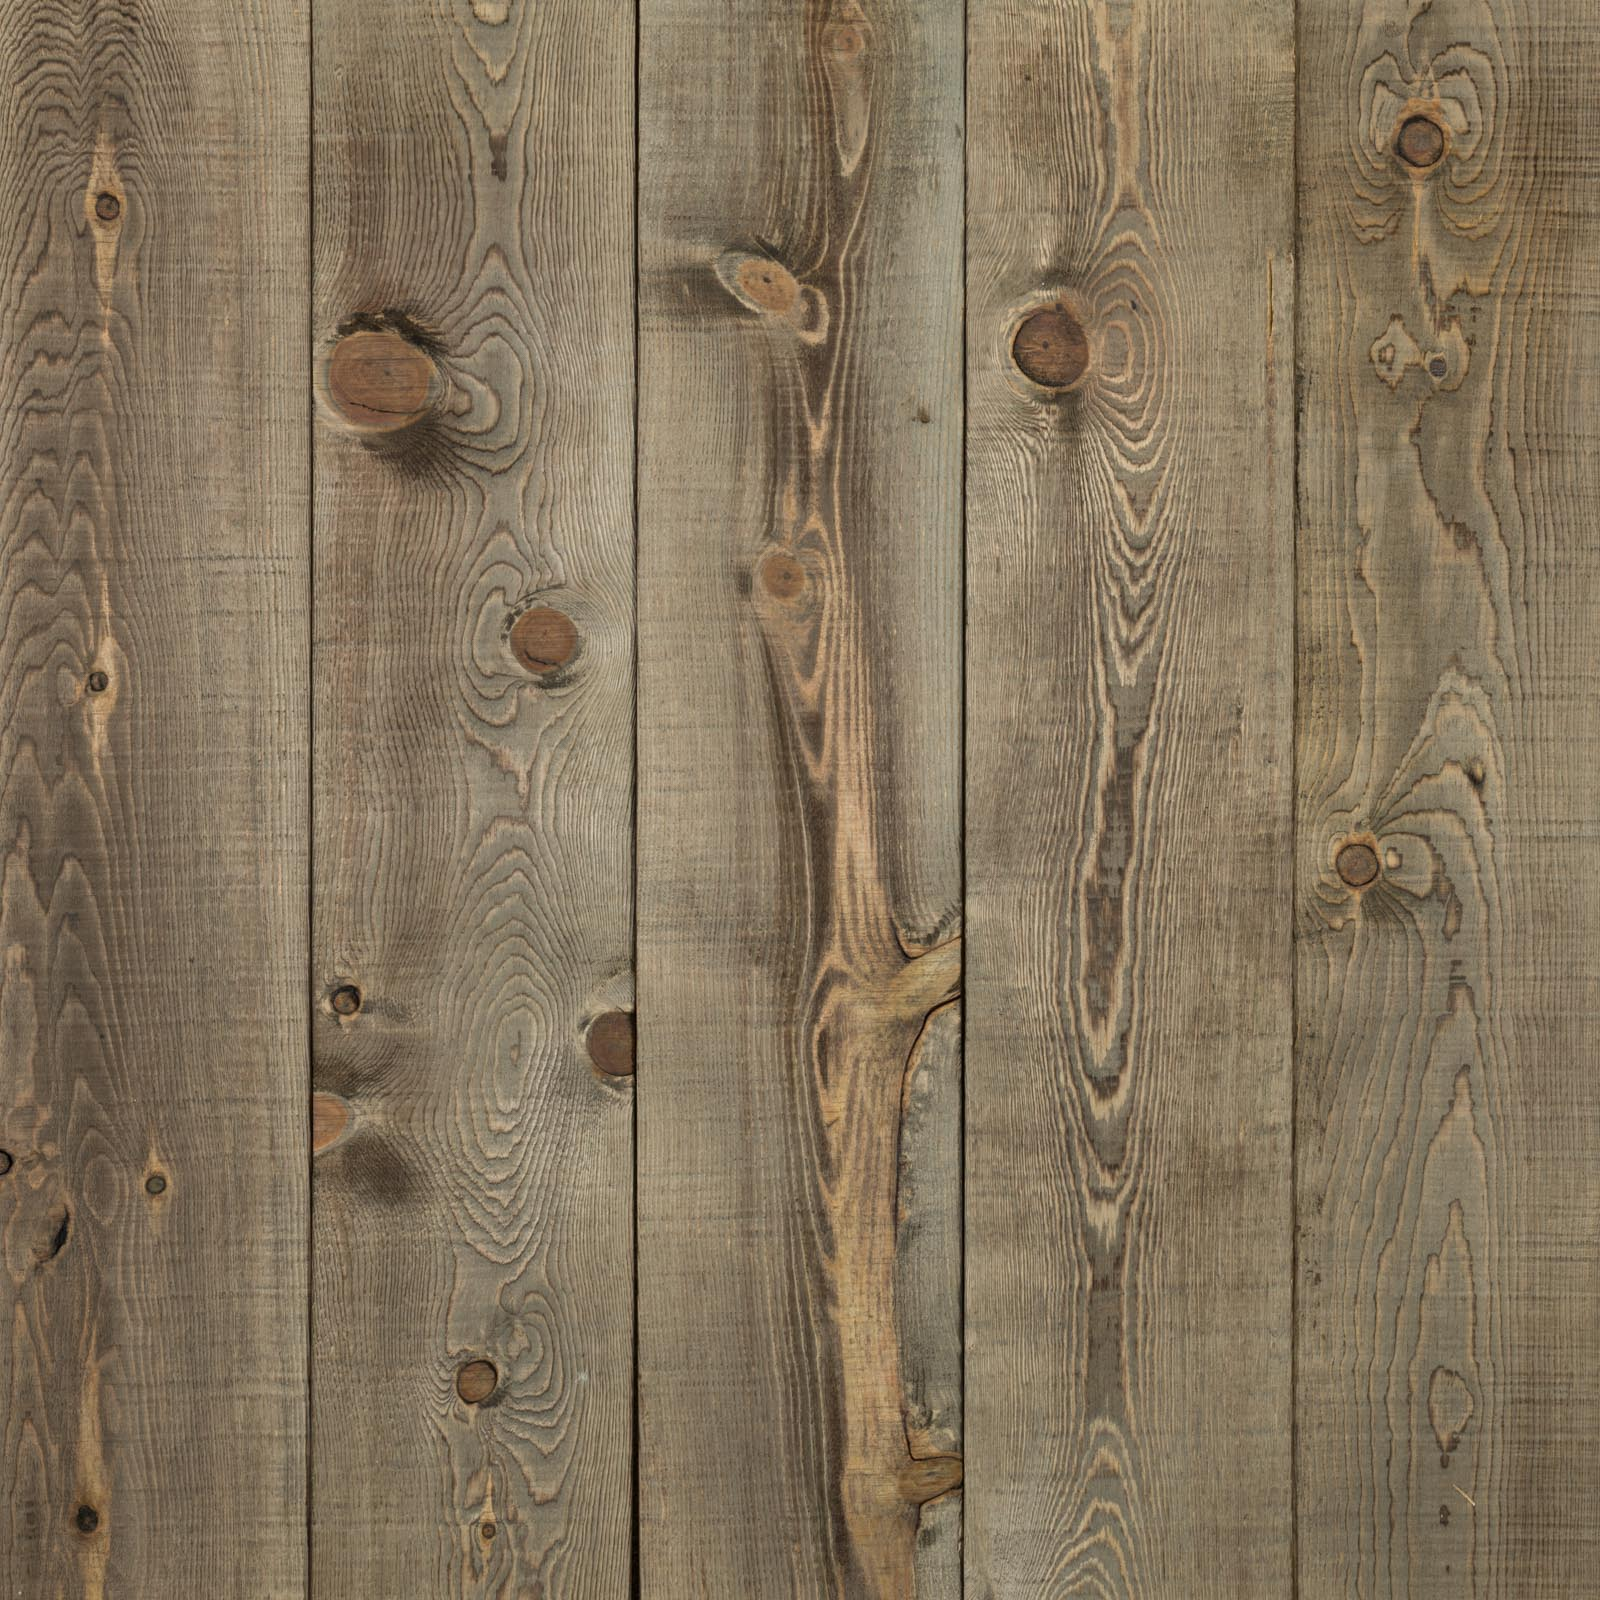 Wood Siding Amp Paneling Hewn Elements